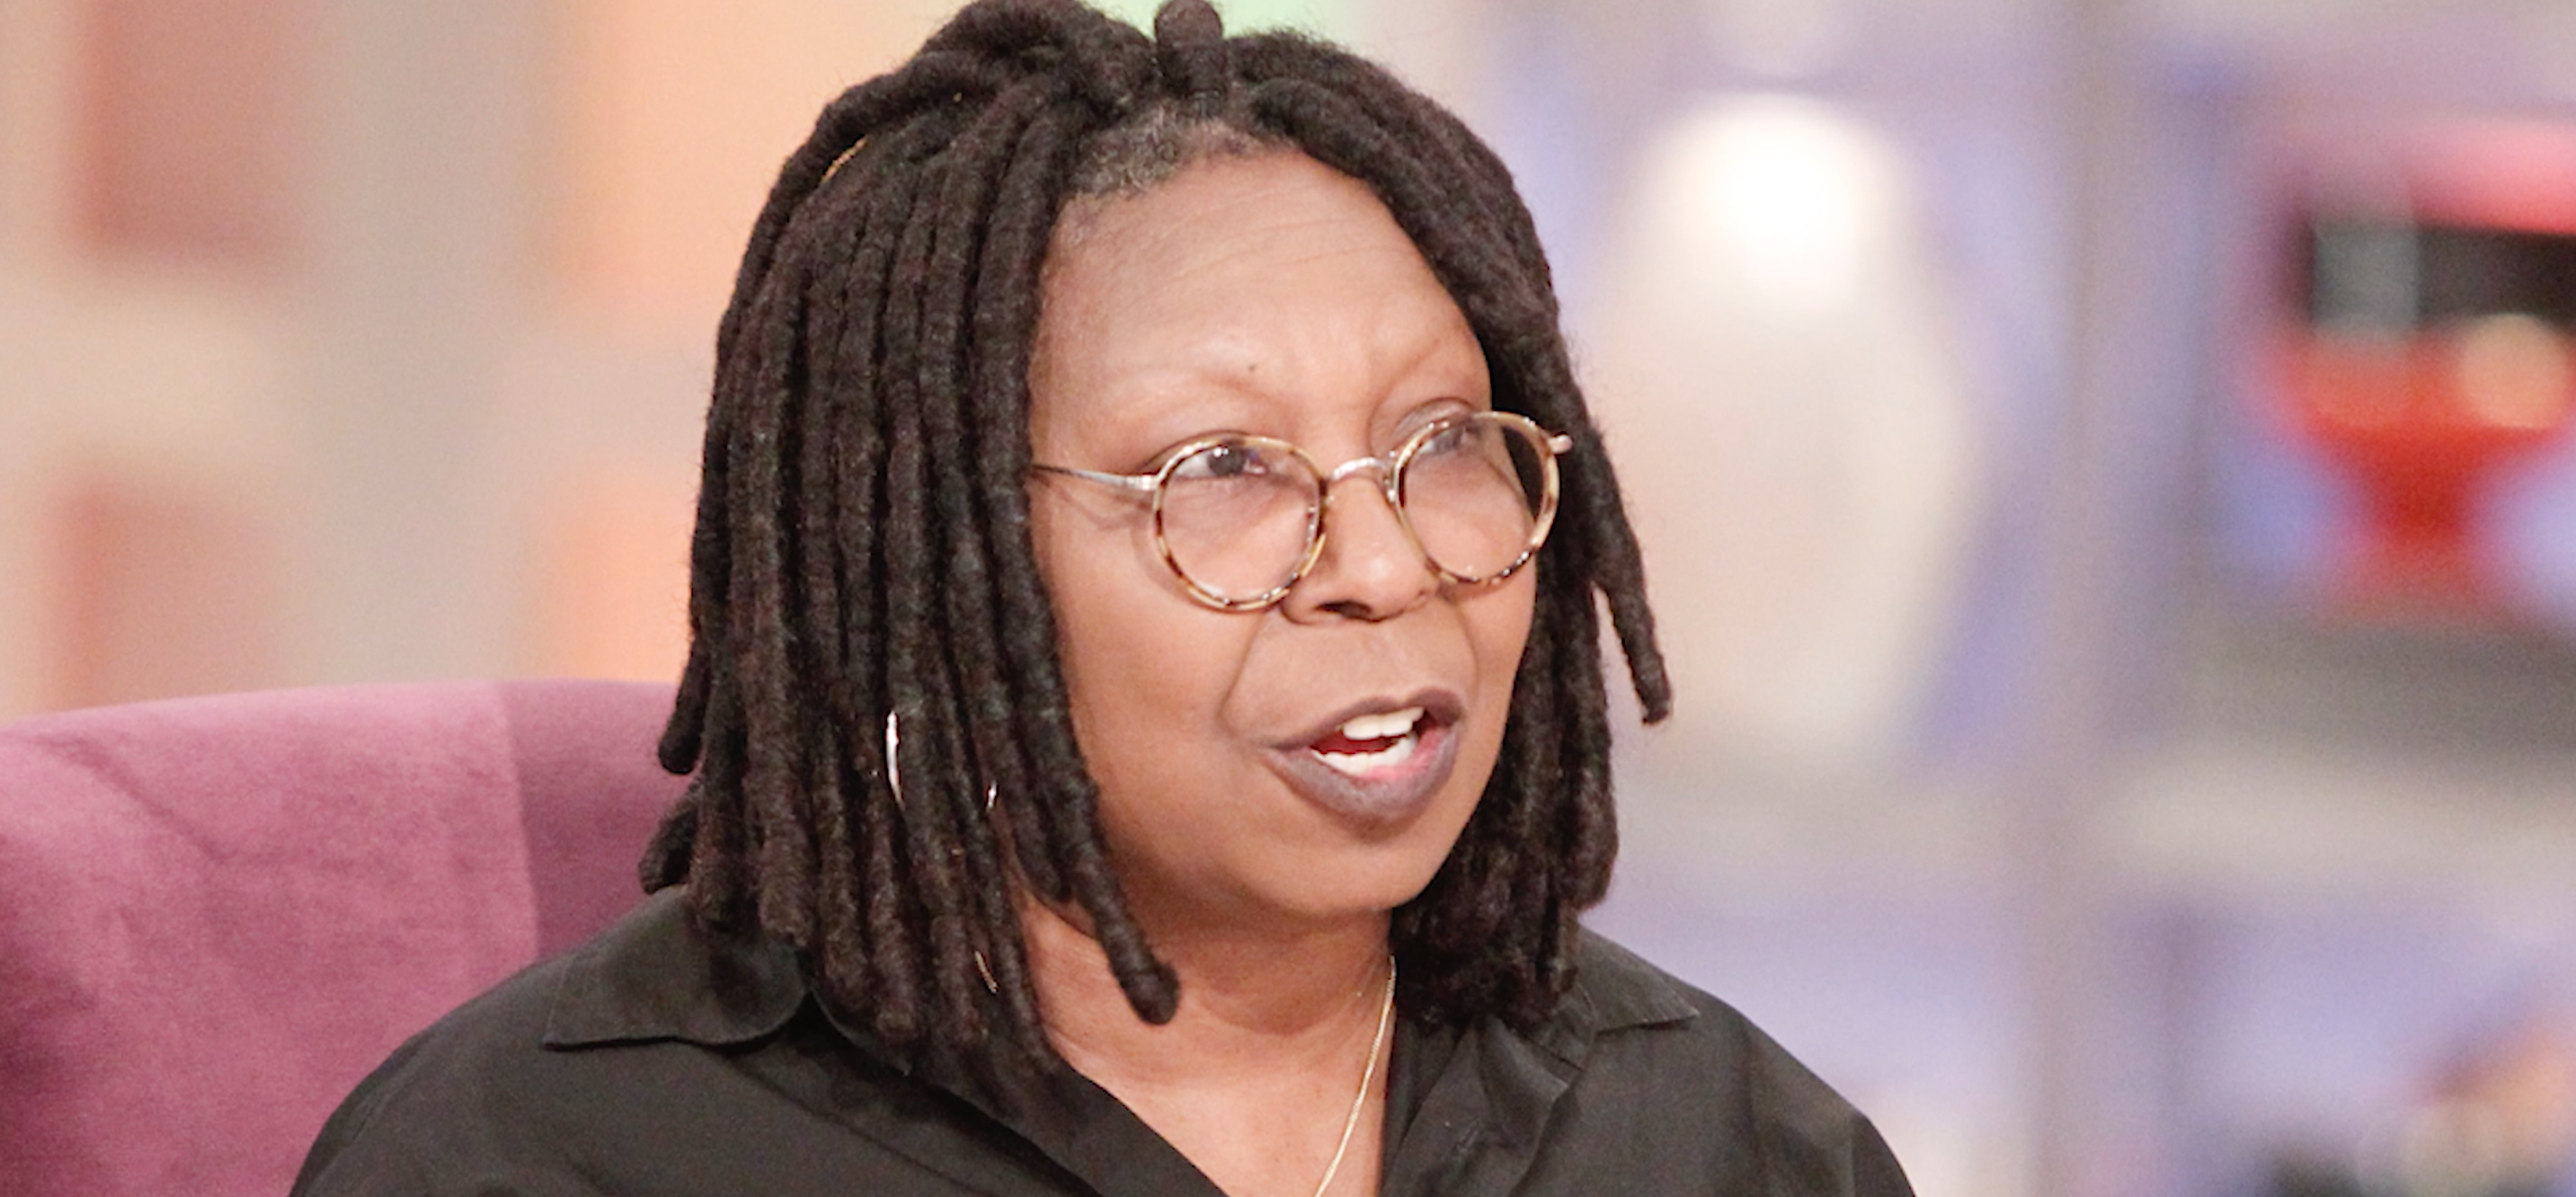 'The View' co-hosts discuss Alabama abortion law [Video]